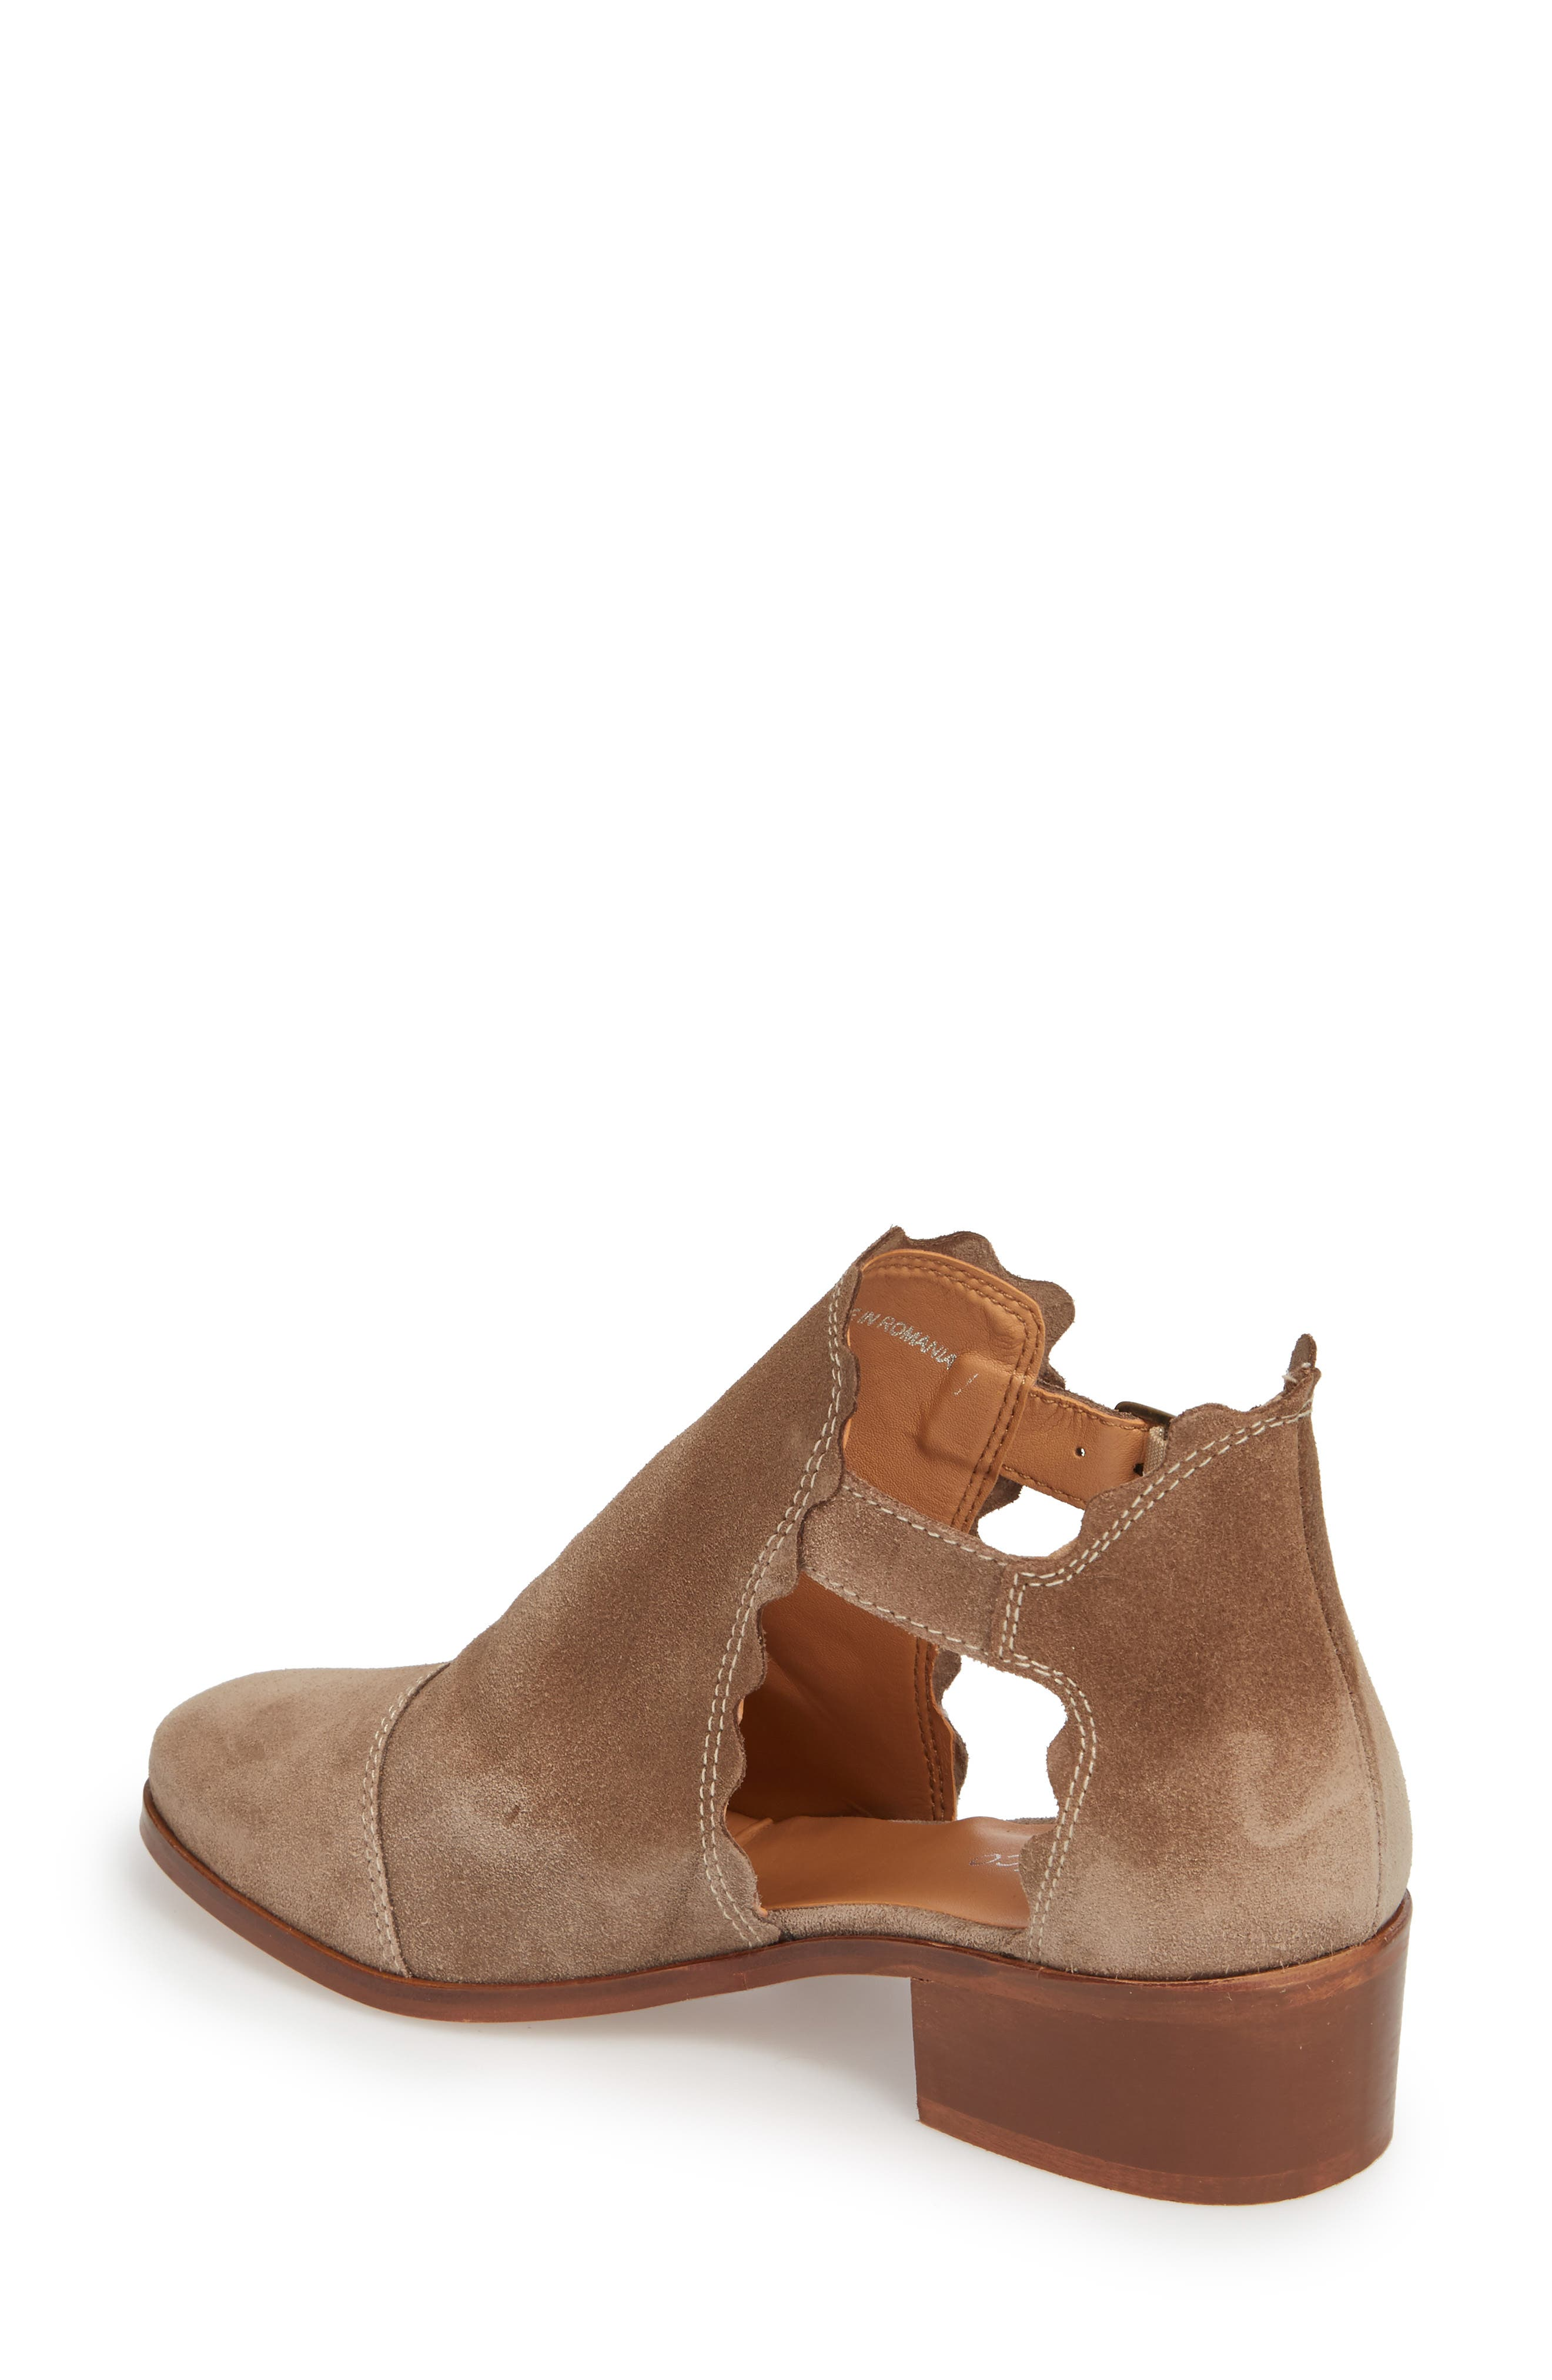 Beau Open Side Bootie,                             Alternate thumbnail 2, color,                             Taupe Suede